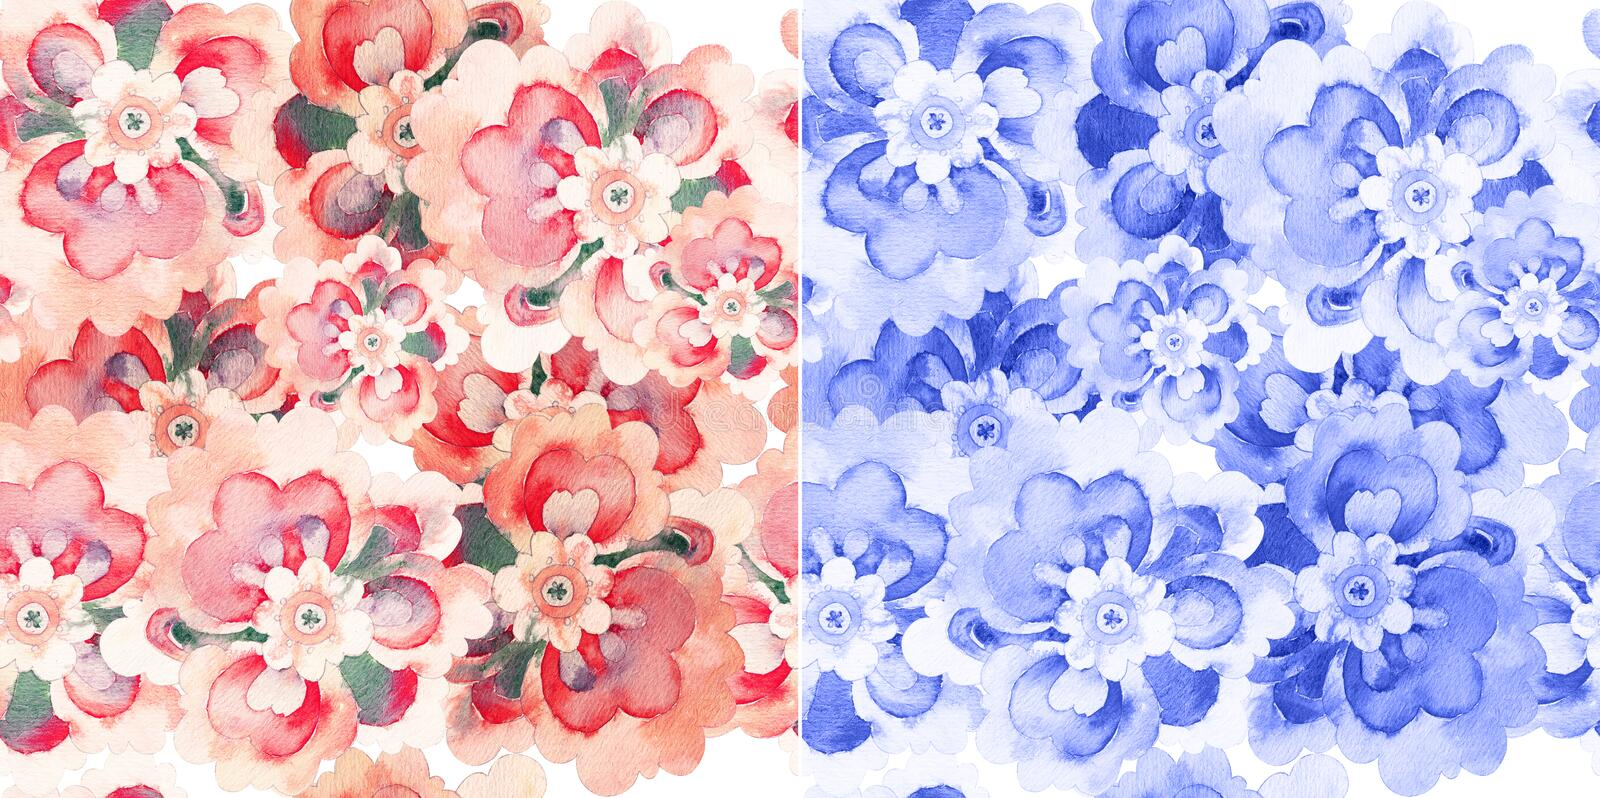 Seamless patterns with watercolor flowers royalty free illustration